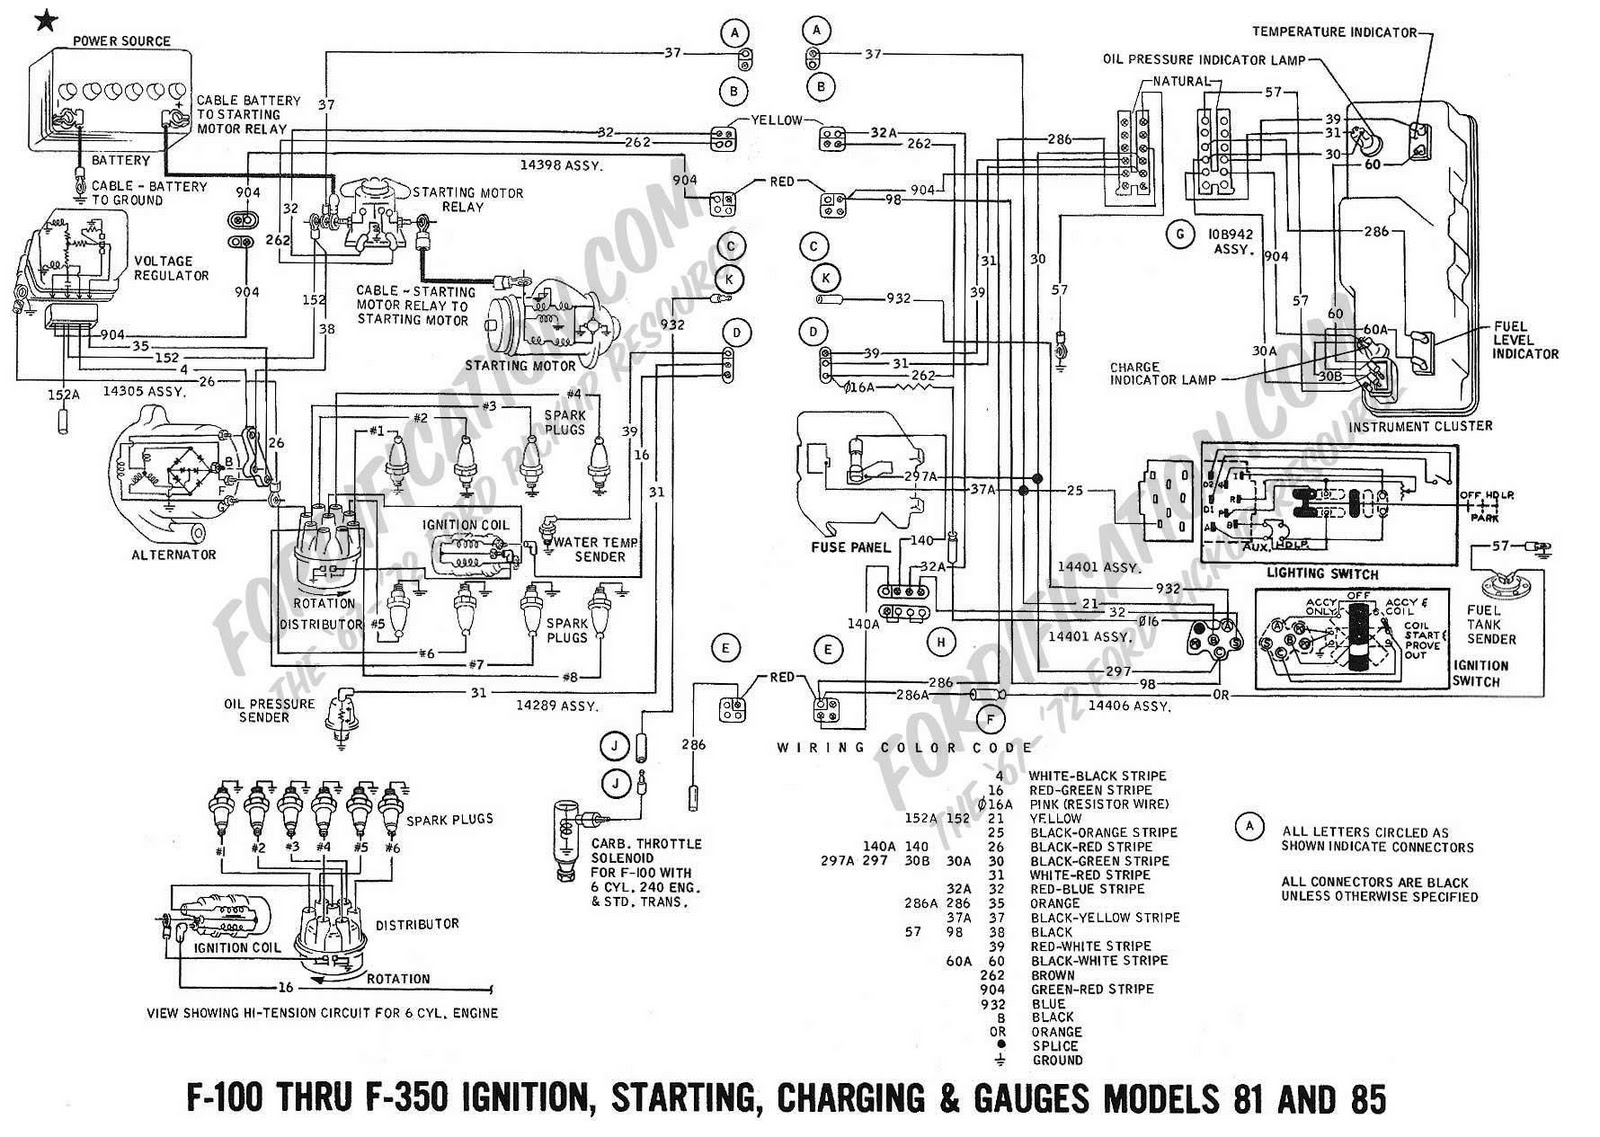 medium resolution of 1969 ford f100 f350 ignition starting charging and 1971 camaro wiper wiring 1969 camaro wiring schematic